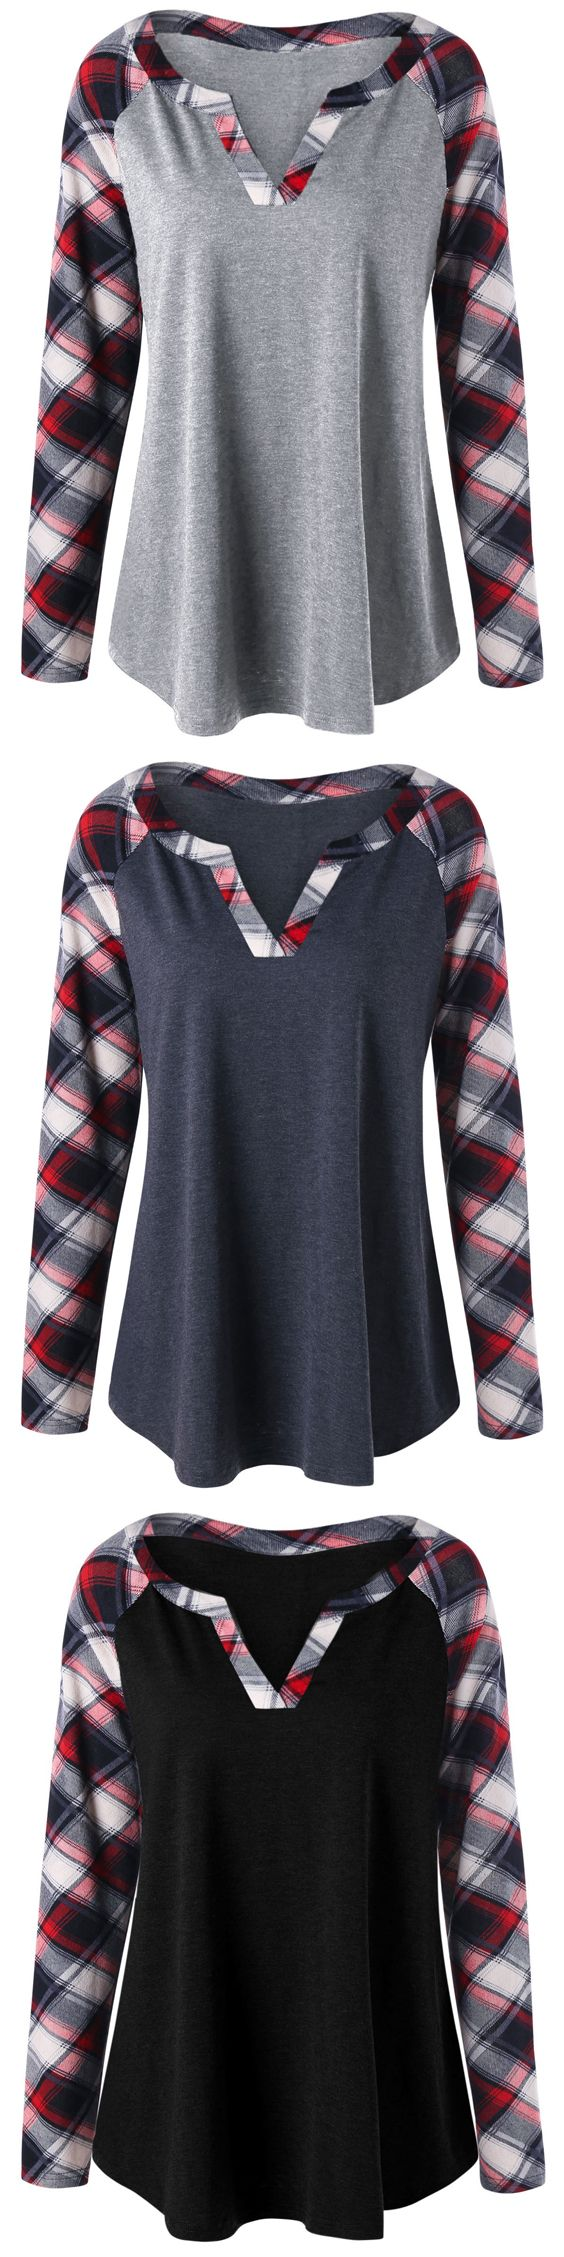 Plus Size Plaid Raglan Sleeve Top